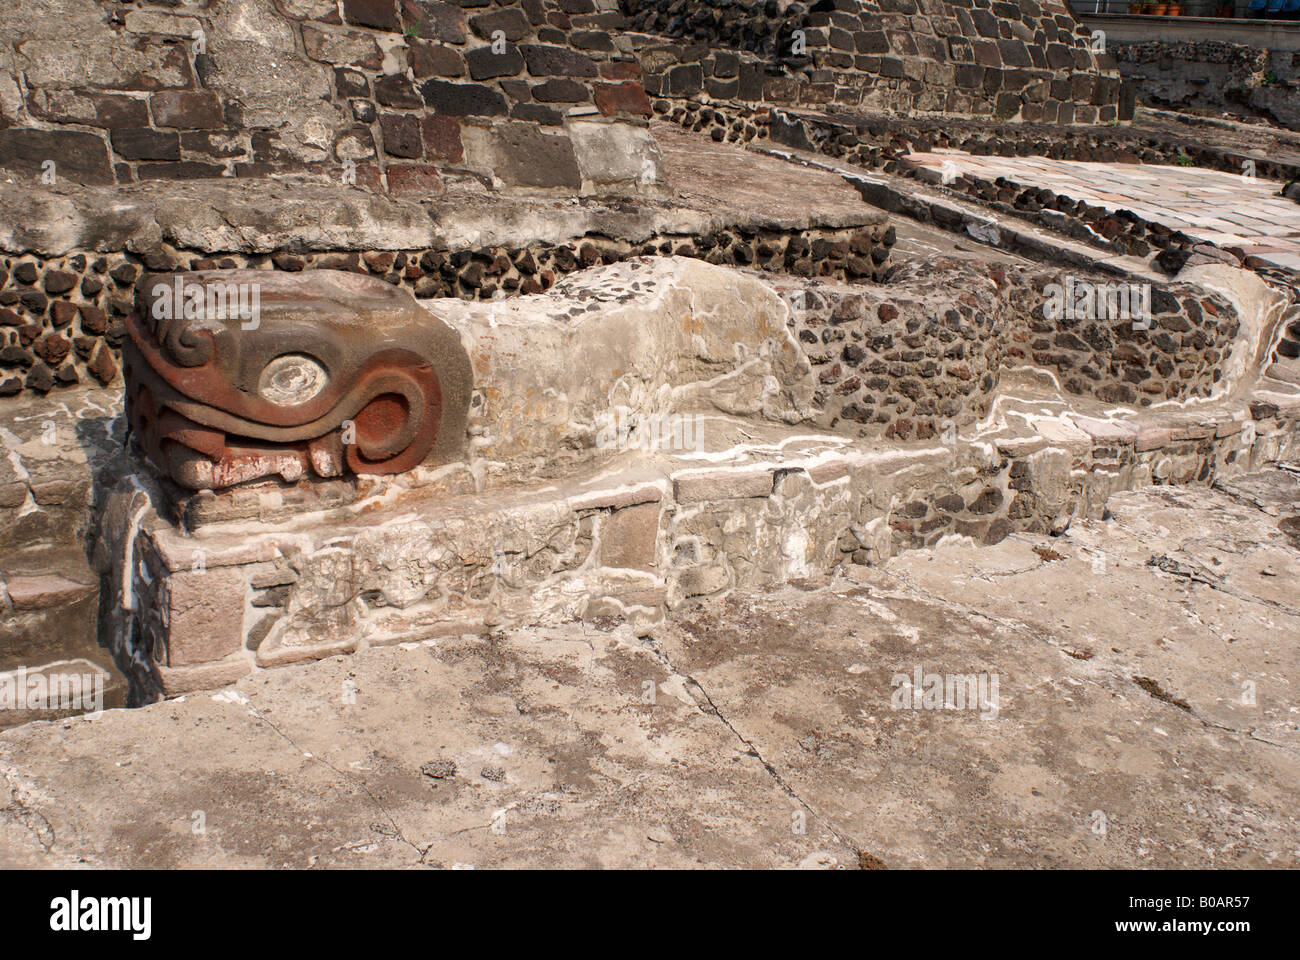 Writhing serpent sculpture at the foot of the Templo Mayor or Great Temple of Tenochtitlan, Mexico City Stock Photo